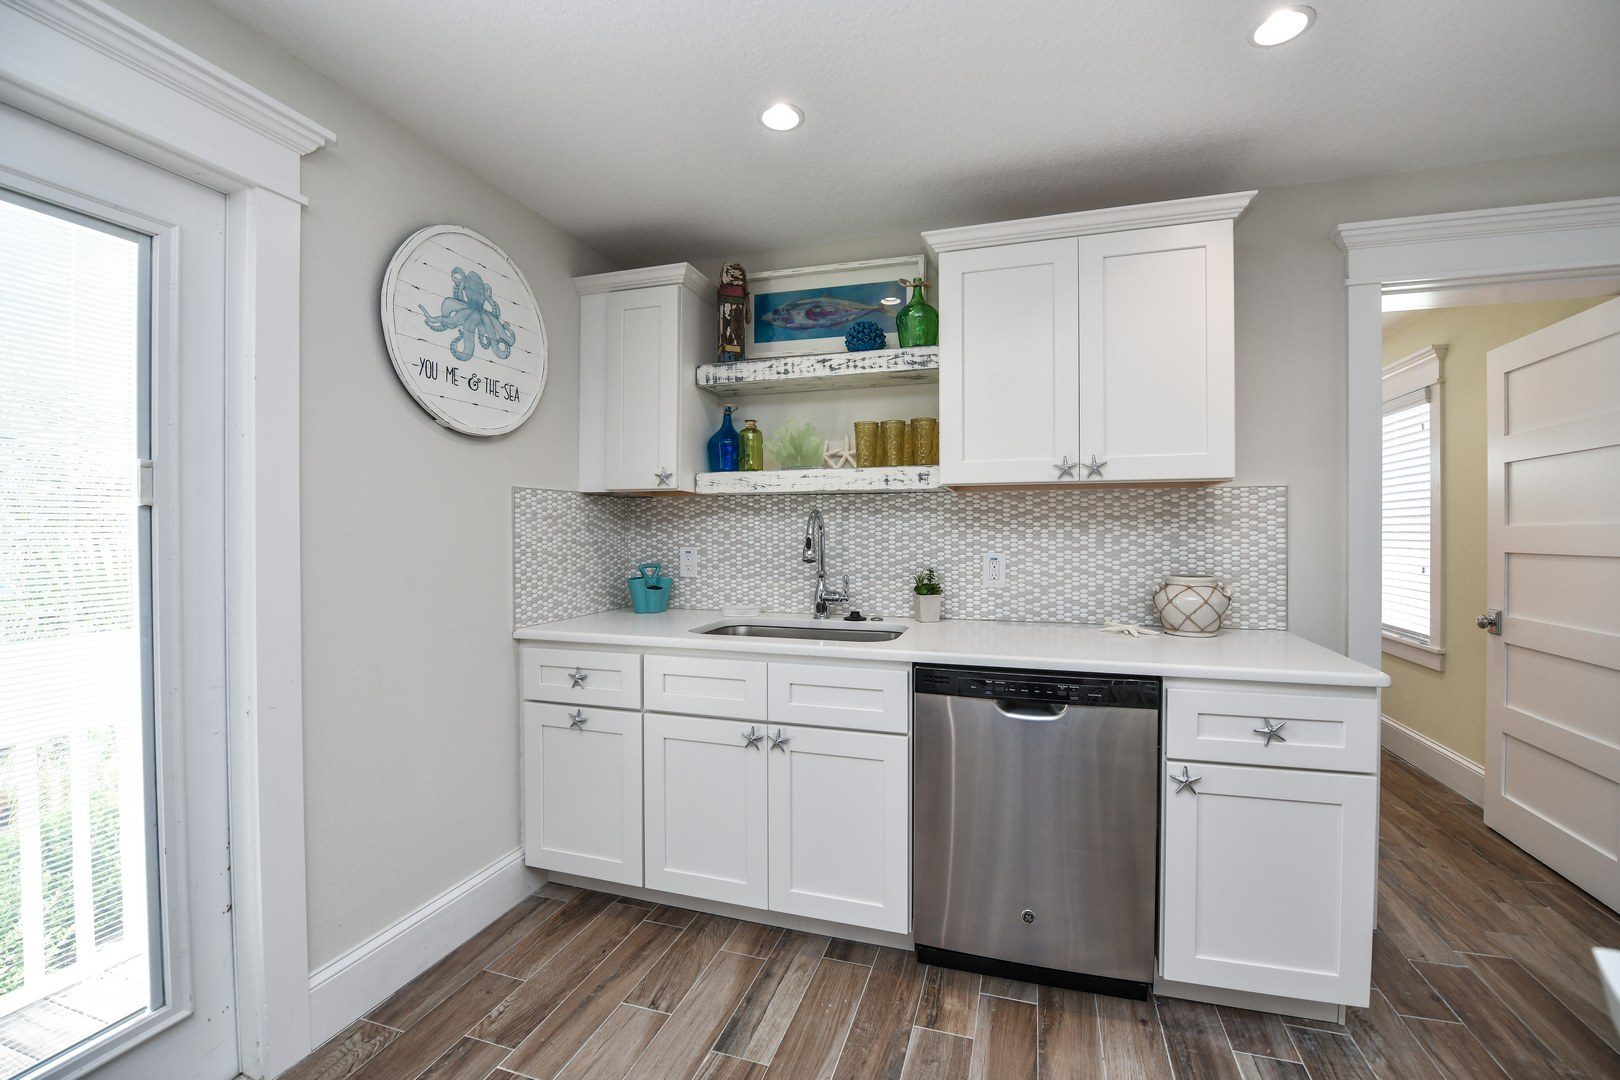 Kitchen - Fully Stocked for your convenience